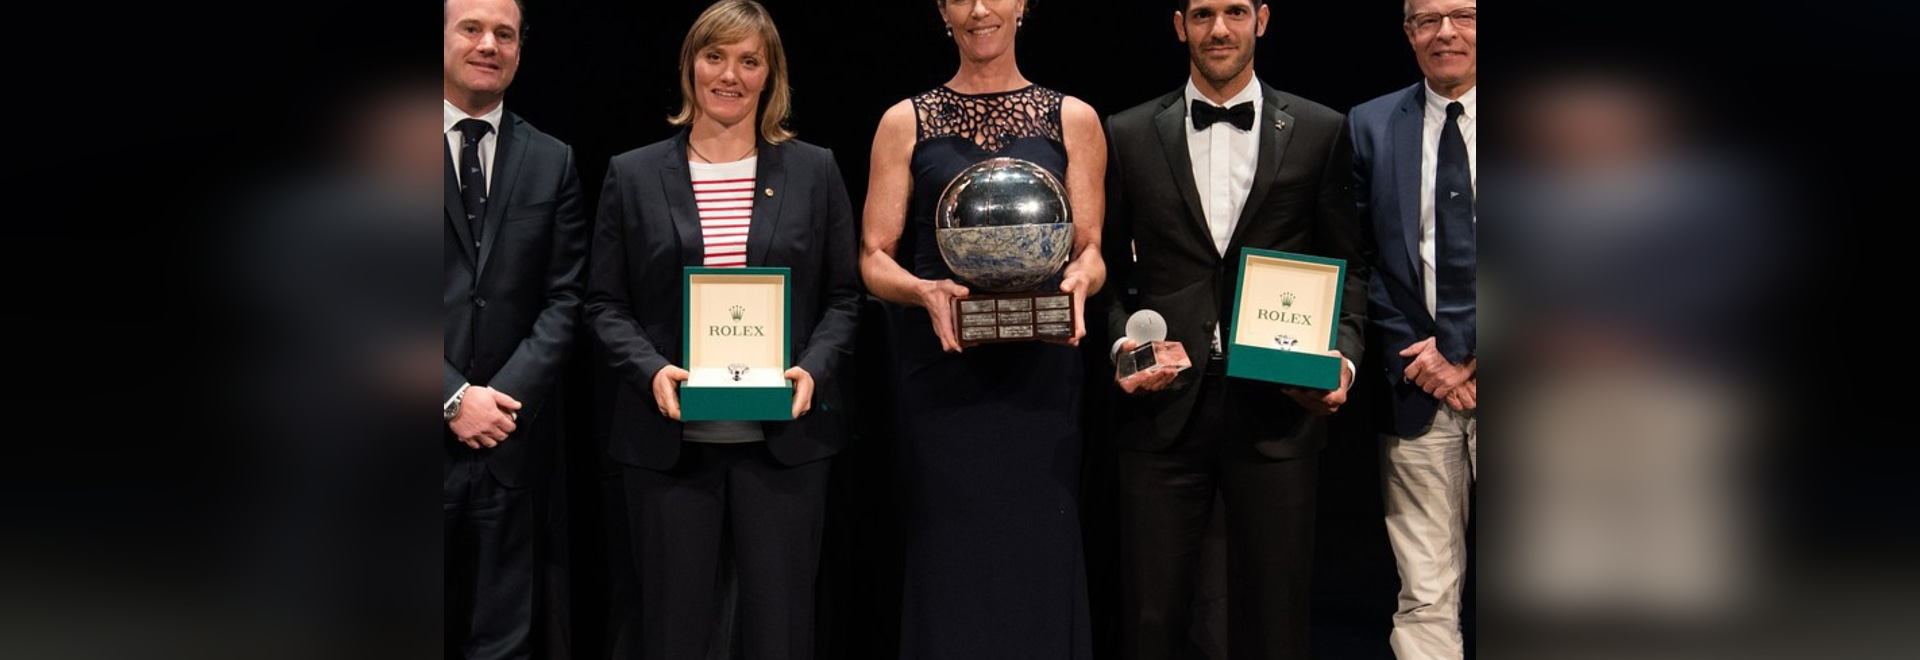 Excellence recognised at the 2018 World Sailing Awards